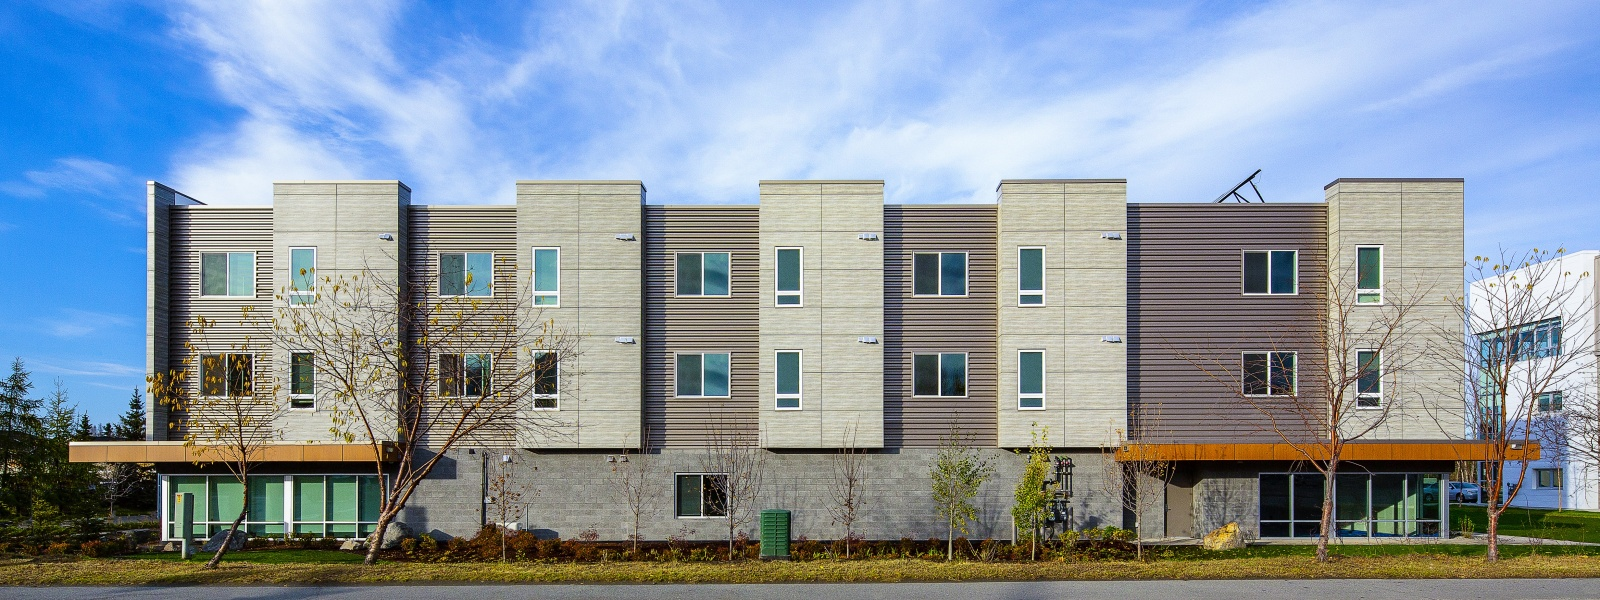 7905 Creekside Center Drive, Anchorage, 99504, 1 Bedroom Bedrooms, ,1 BathroomBathrooms,Apartment,For Rent,Creekside Center Drive,1065